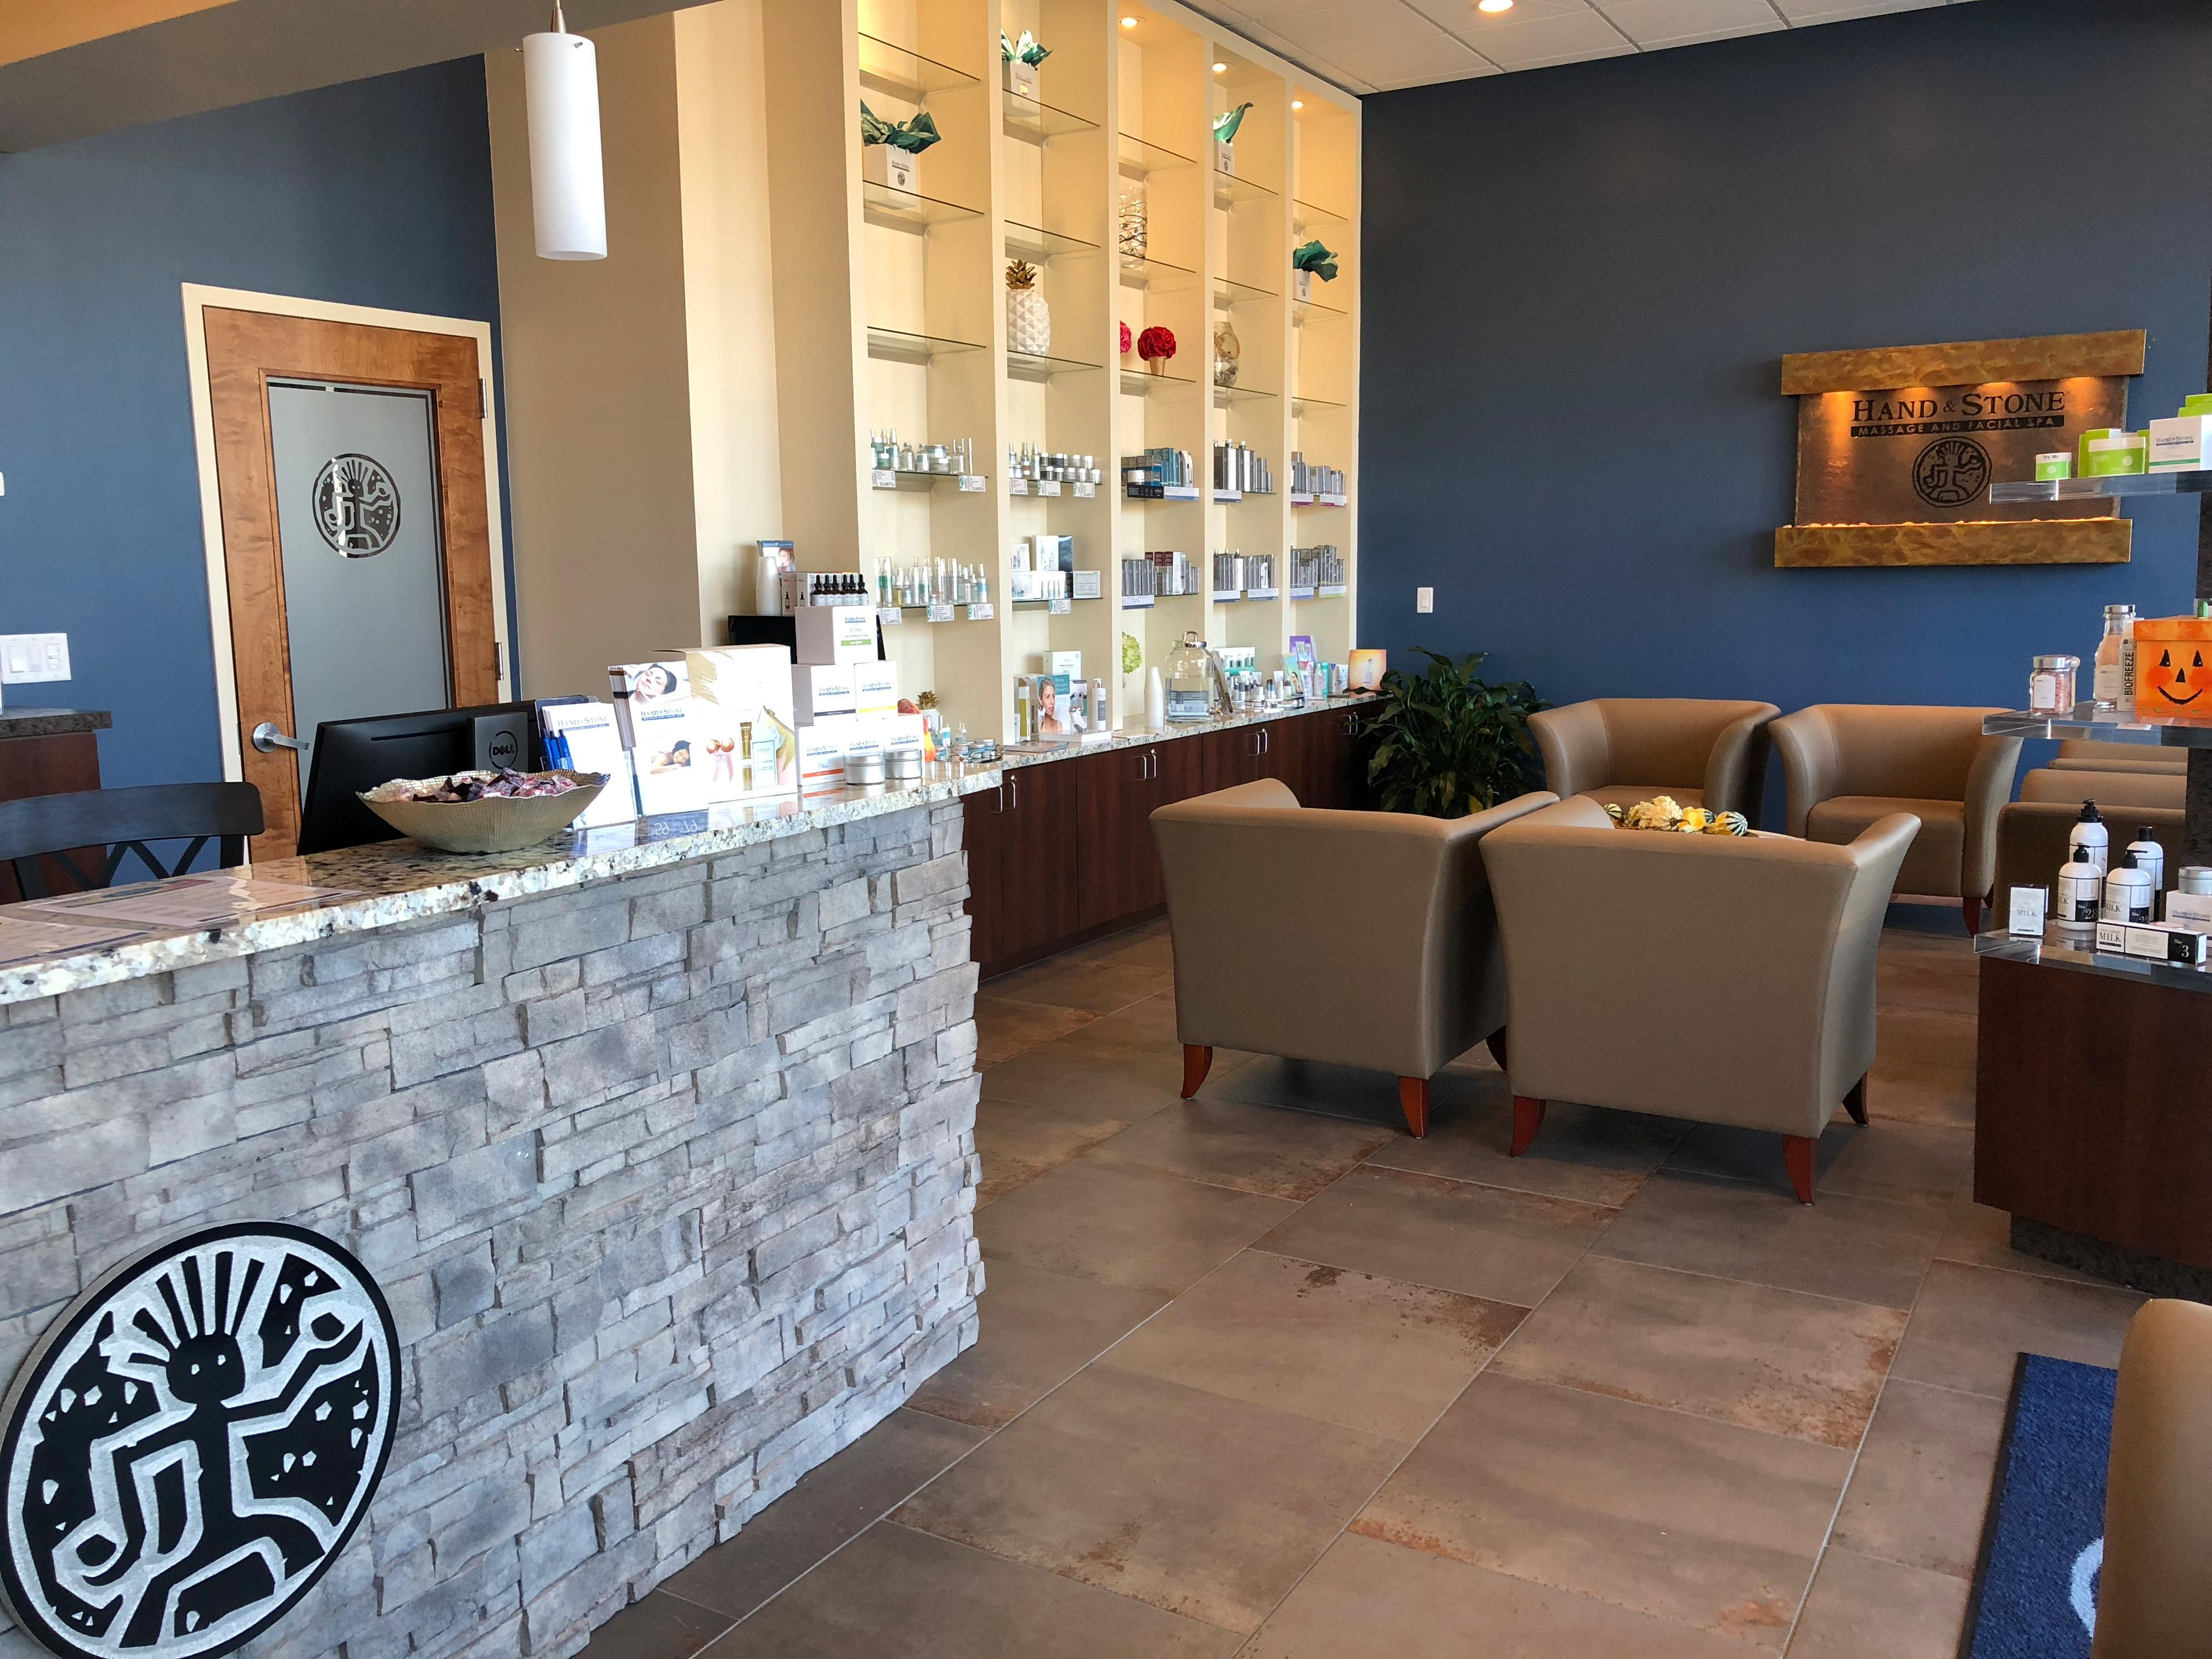 Spa in NY Bellmore 11710 Hand & Stone Massage and Facial Spa 2736 Merrick Road  (516)654-6128